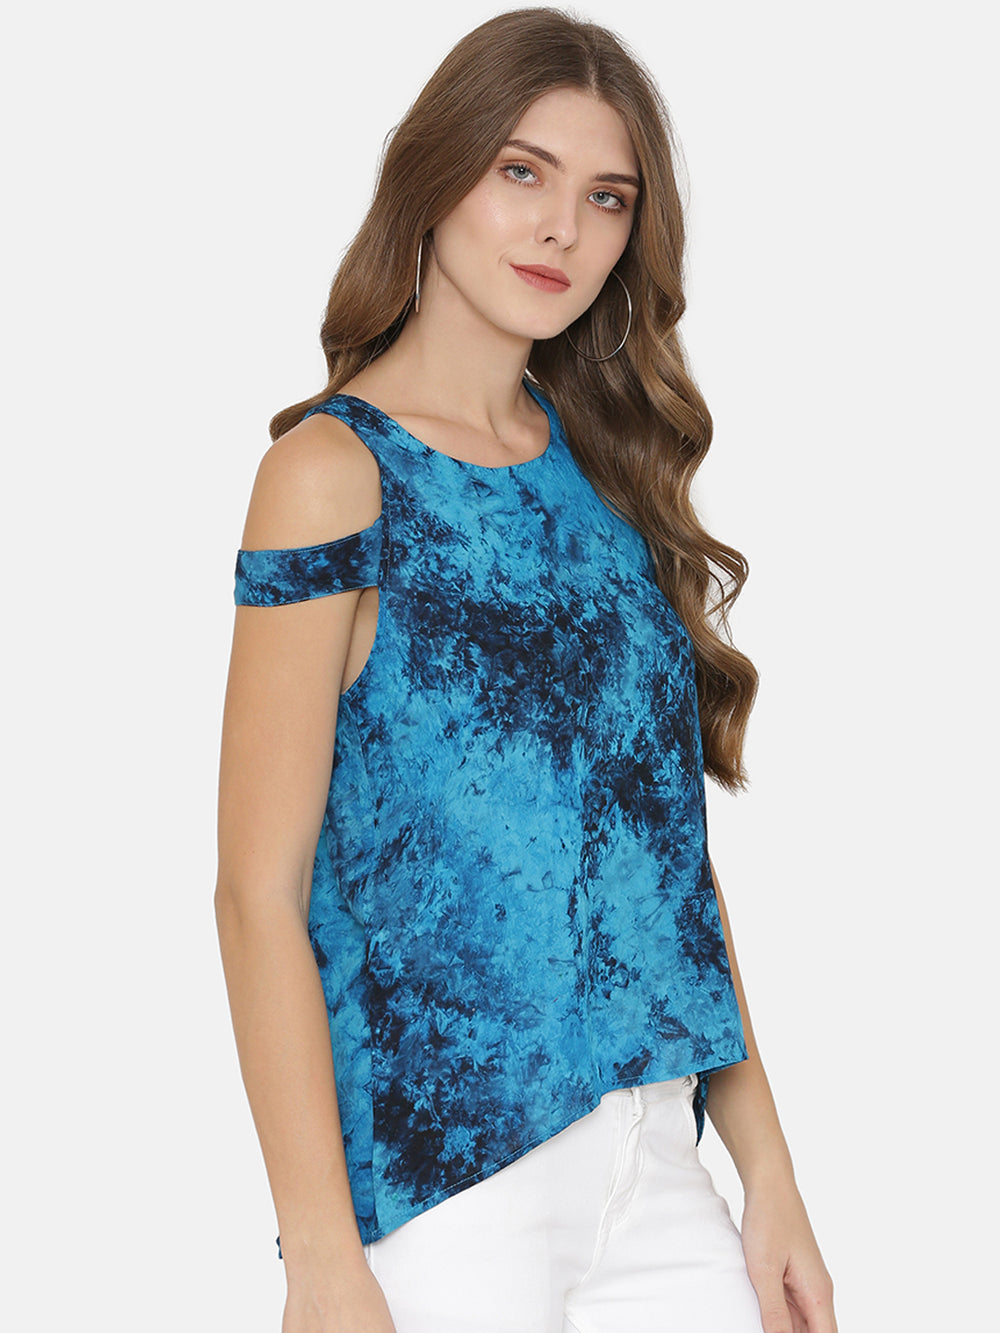 eyelet Women Blue Dyed High-Low Top